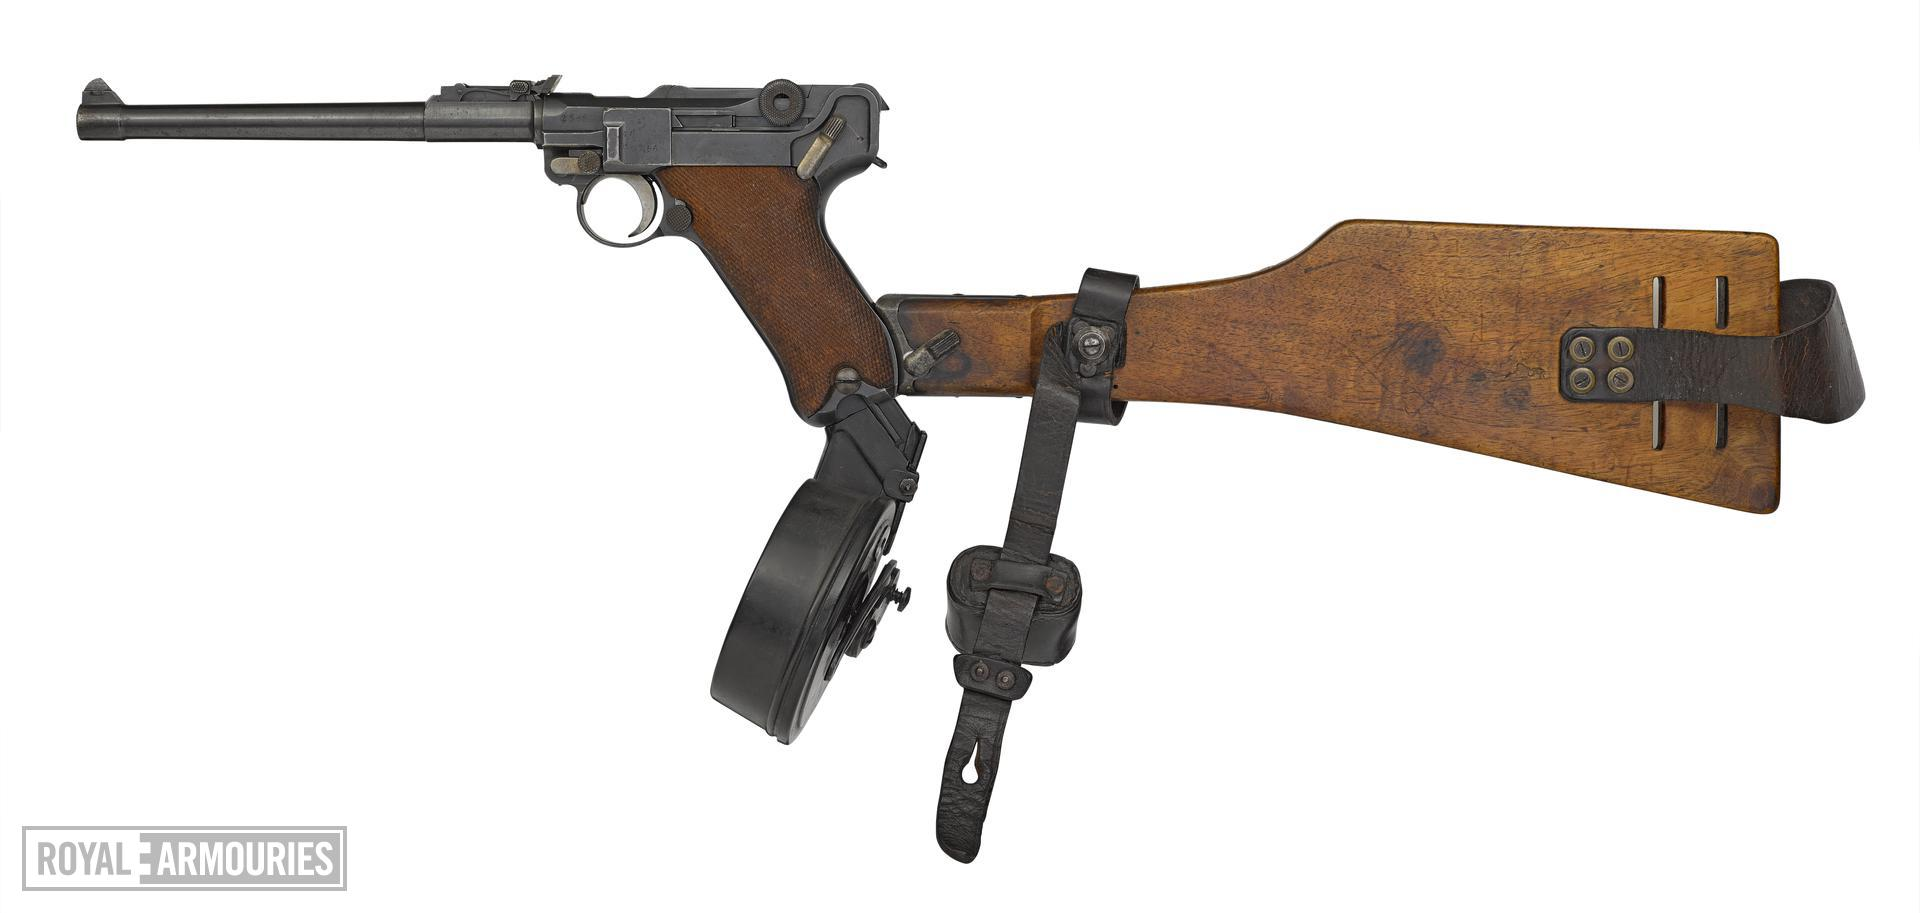 Luger LP08 Artillery Model centrefire self loading pistol pistol, with holster, butt and magazine. Germany, 1917